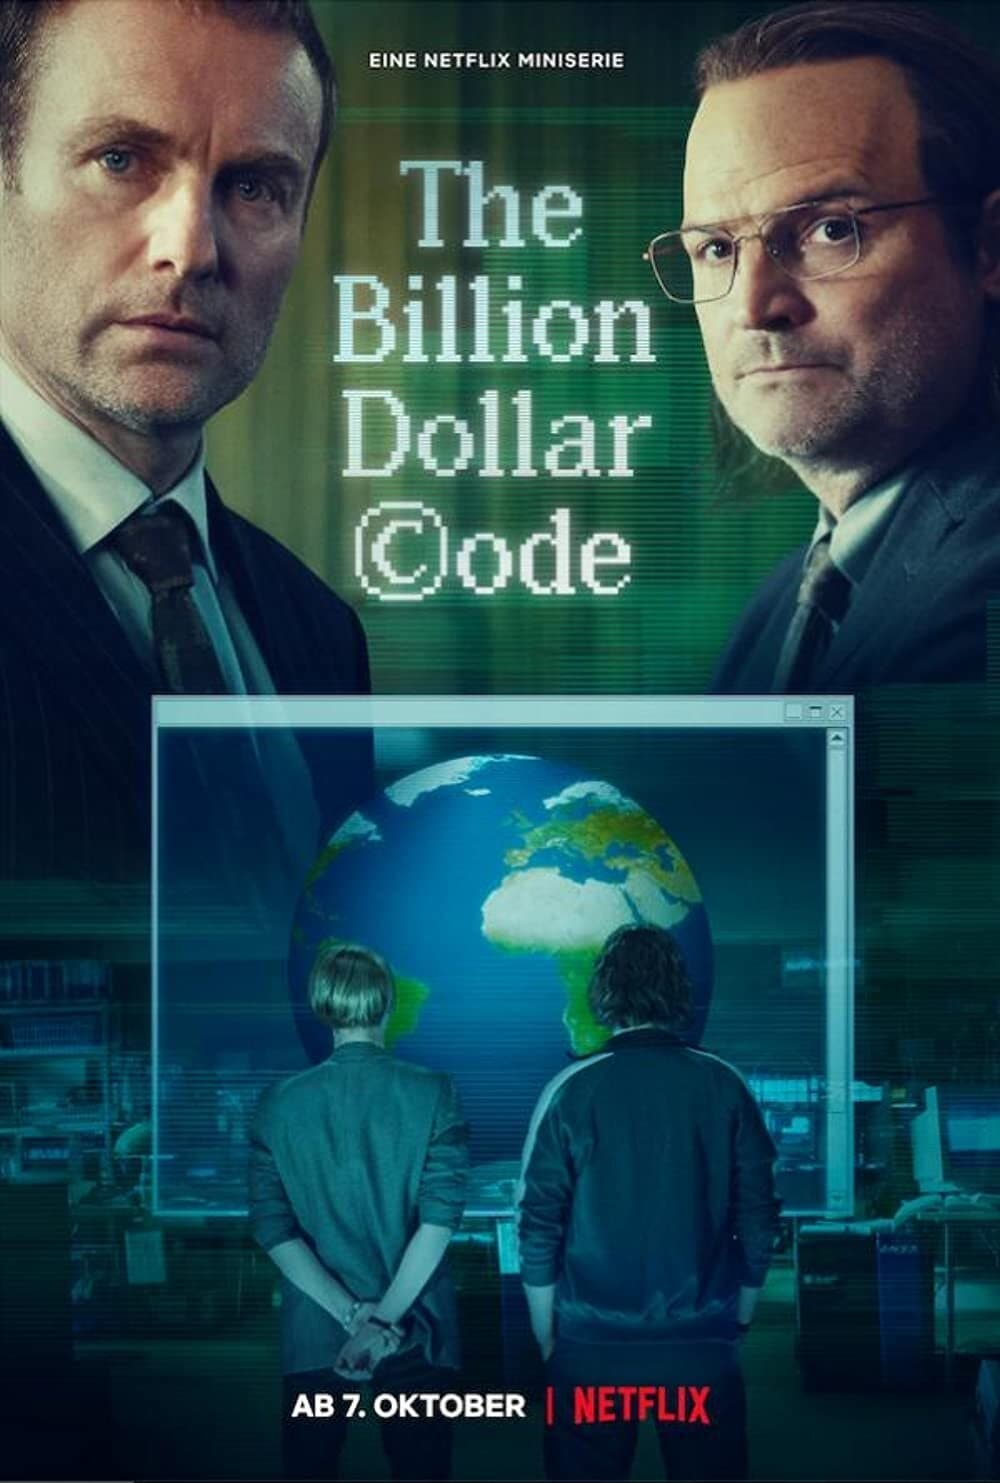 The Billion Dollar Code TV Shows About Courtroom